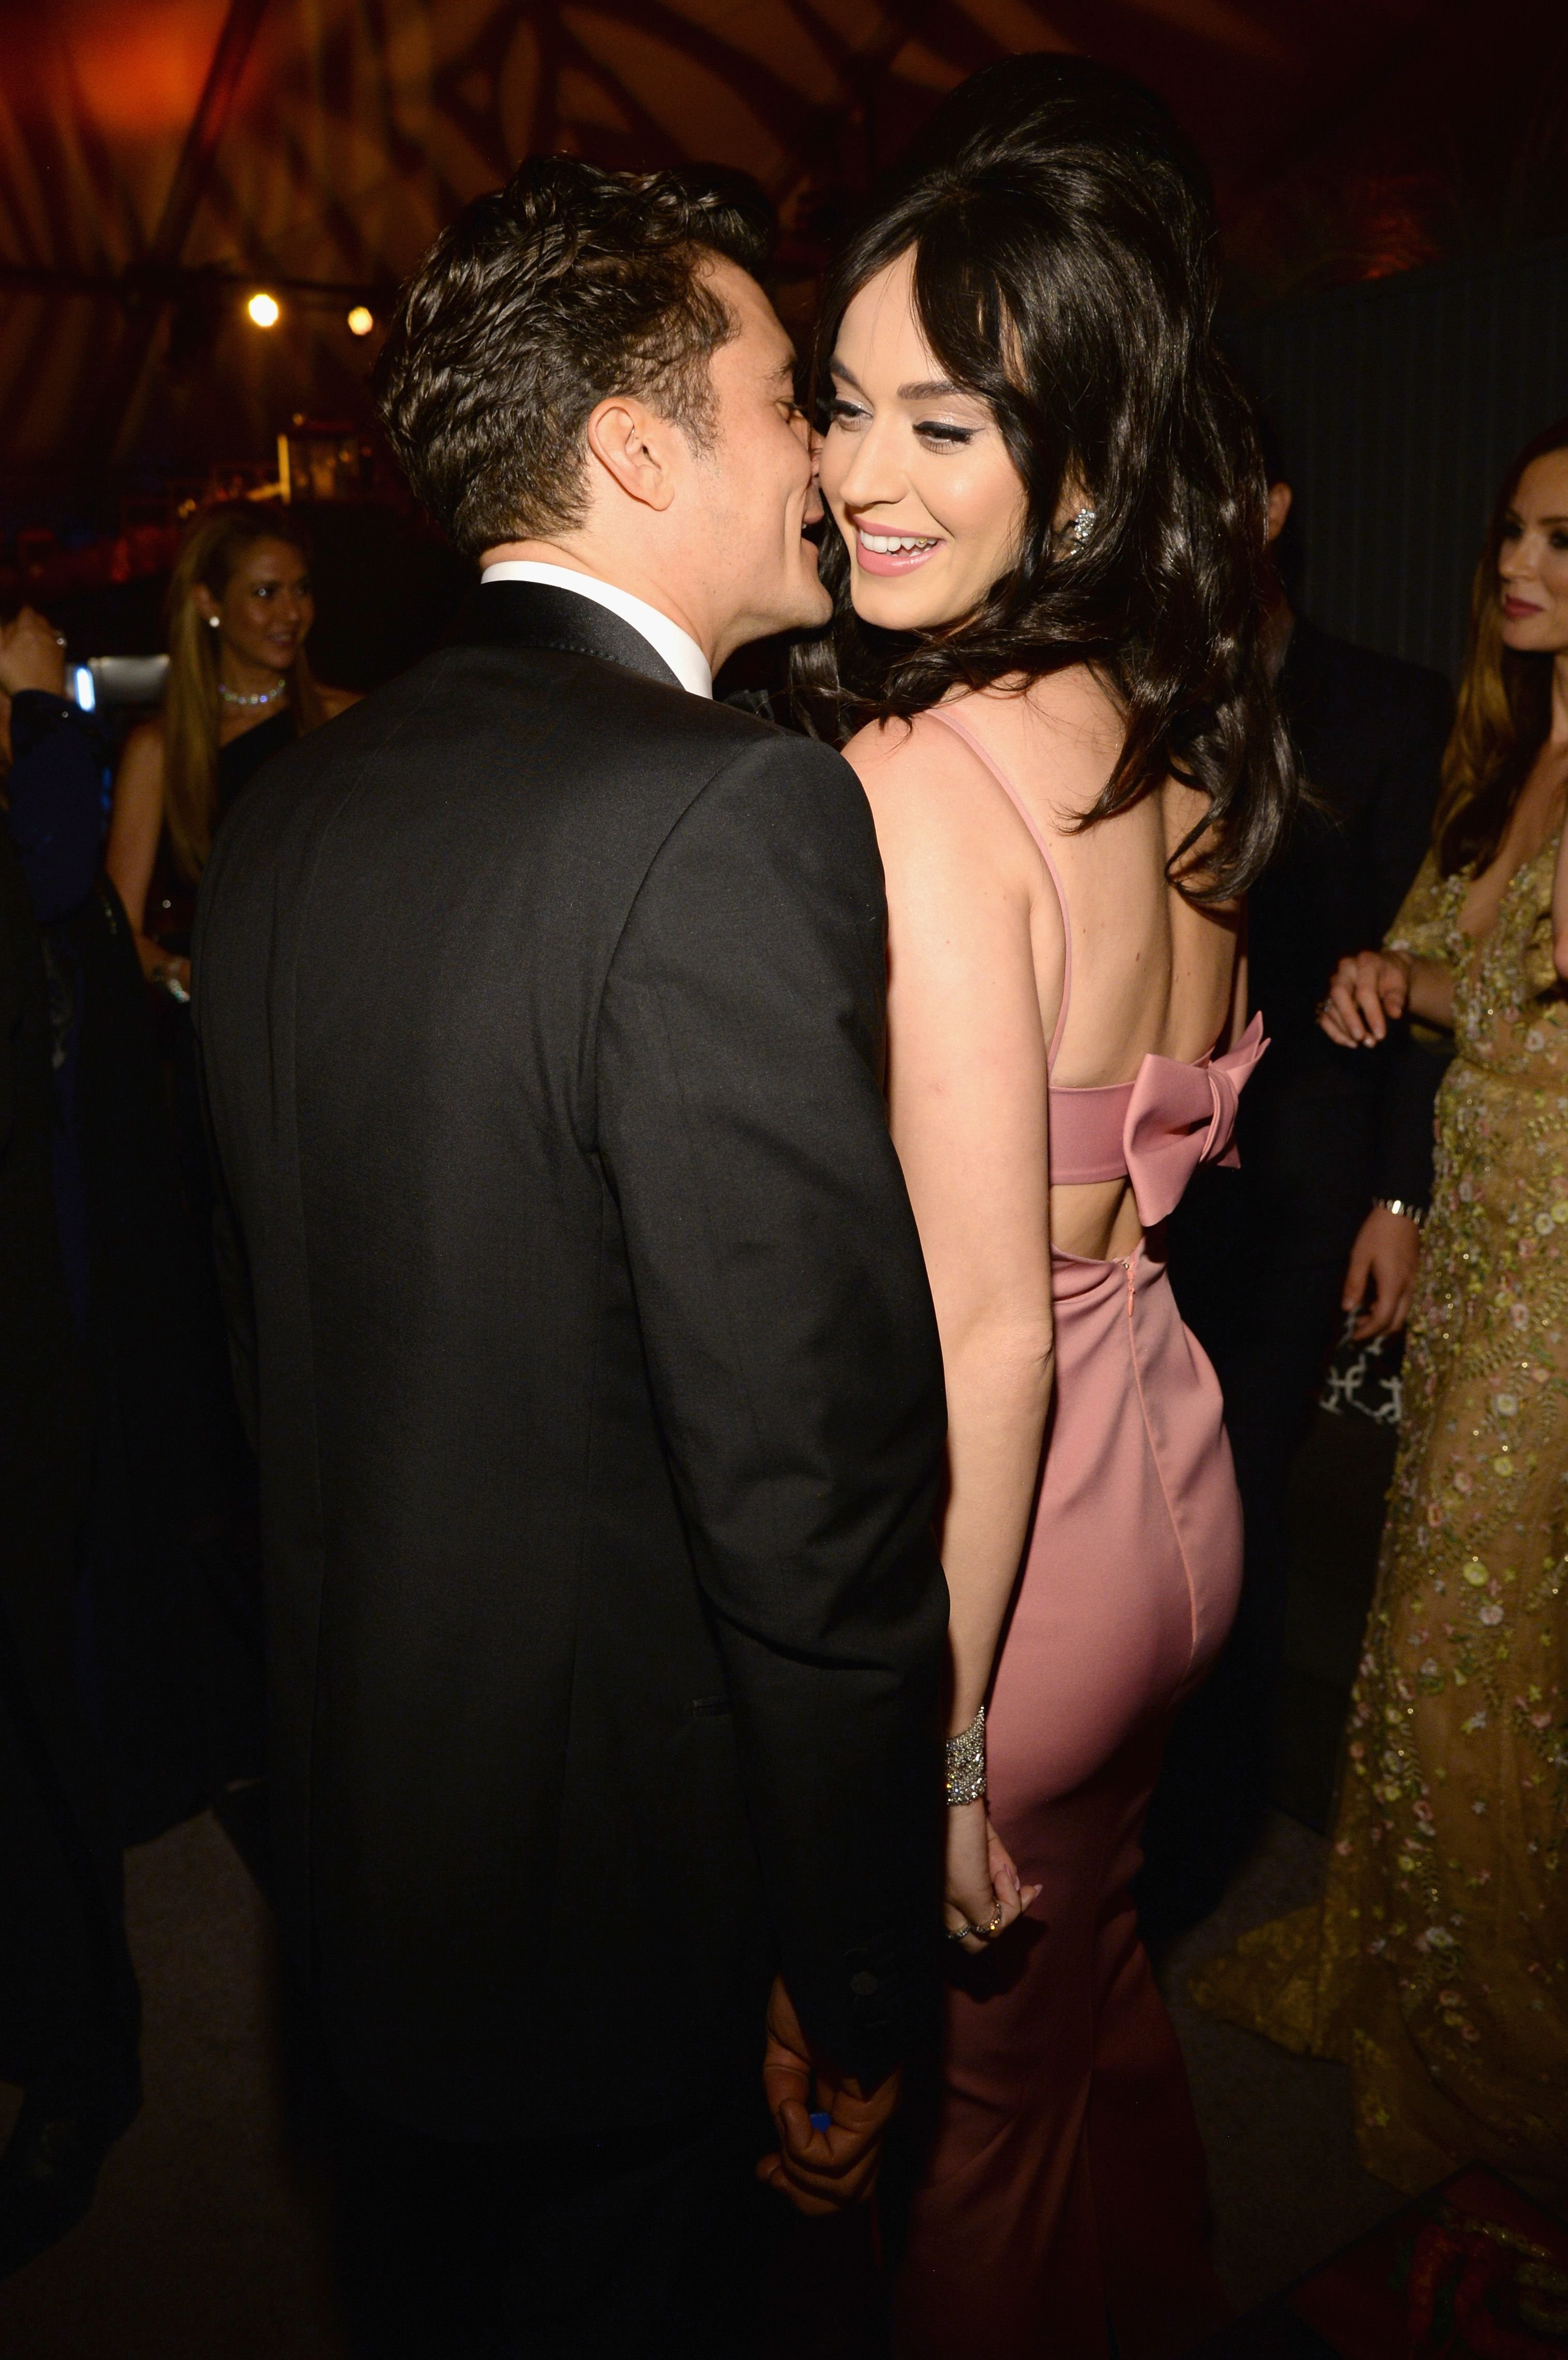 Orlando Bloom and Katy Perry attend The Weinstein Company and Netflix Golden Globe Party / Getty Images